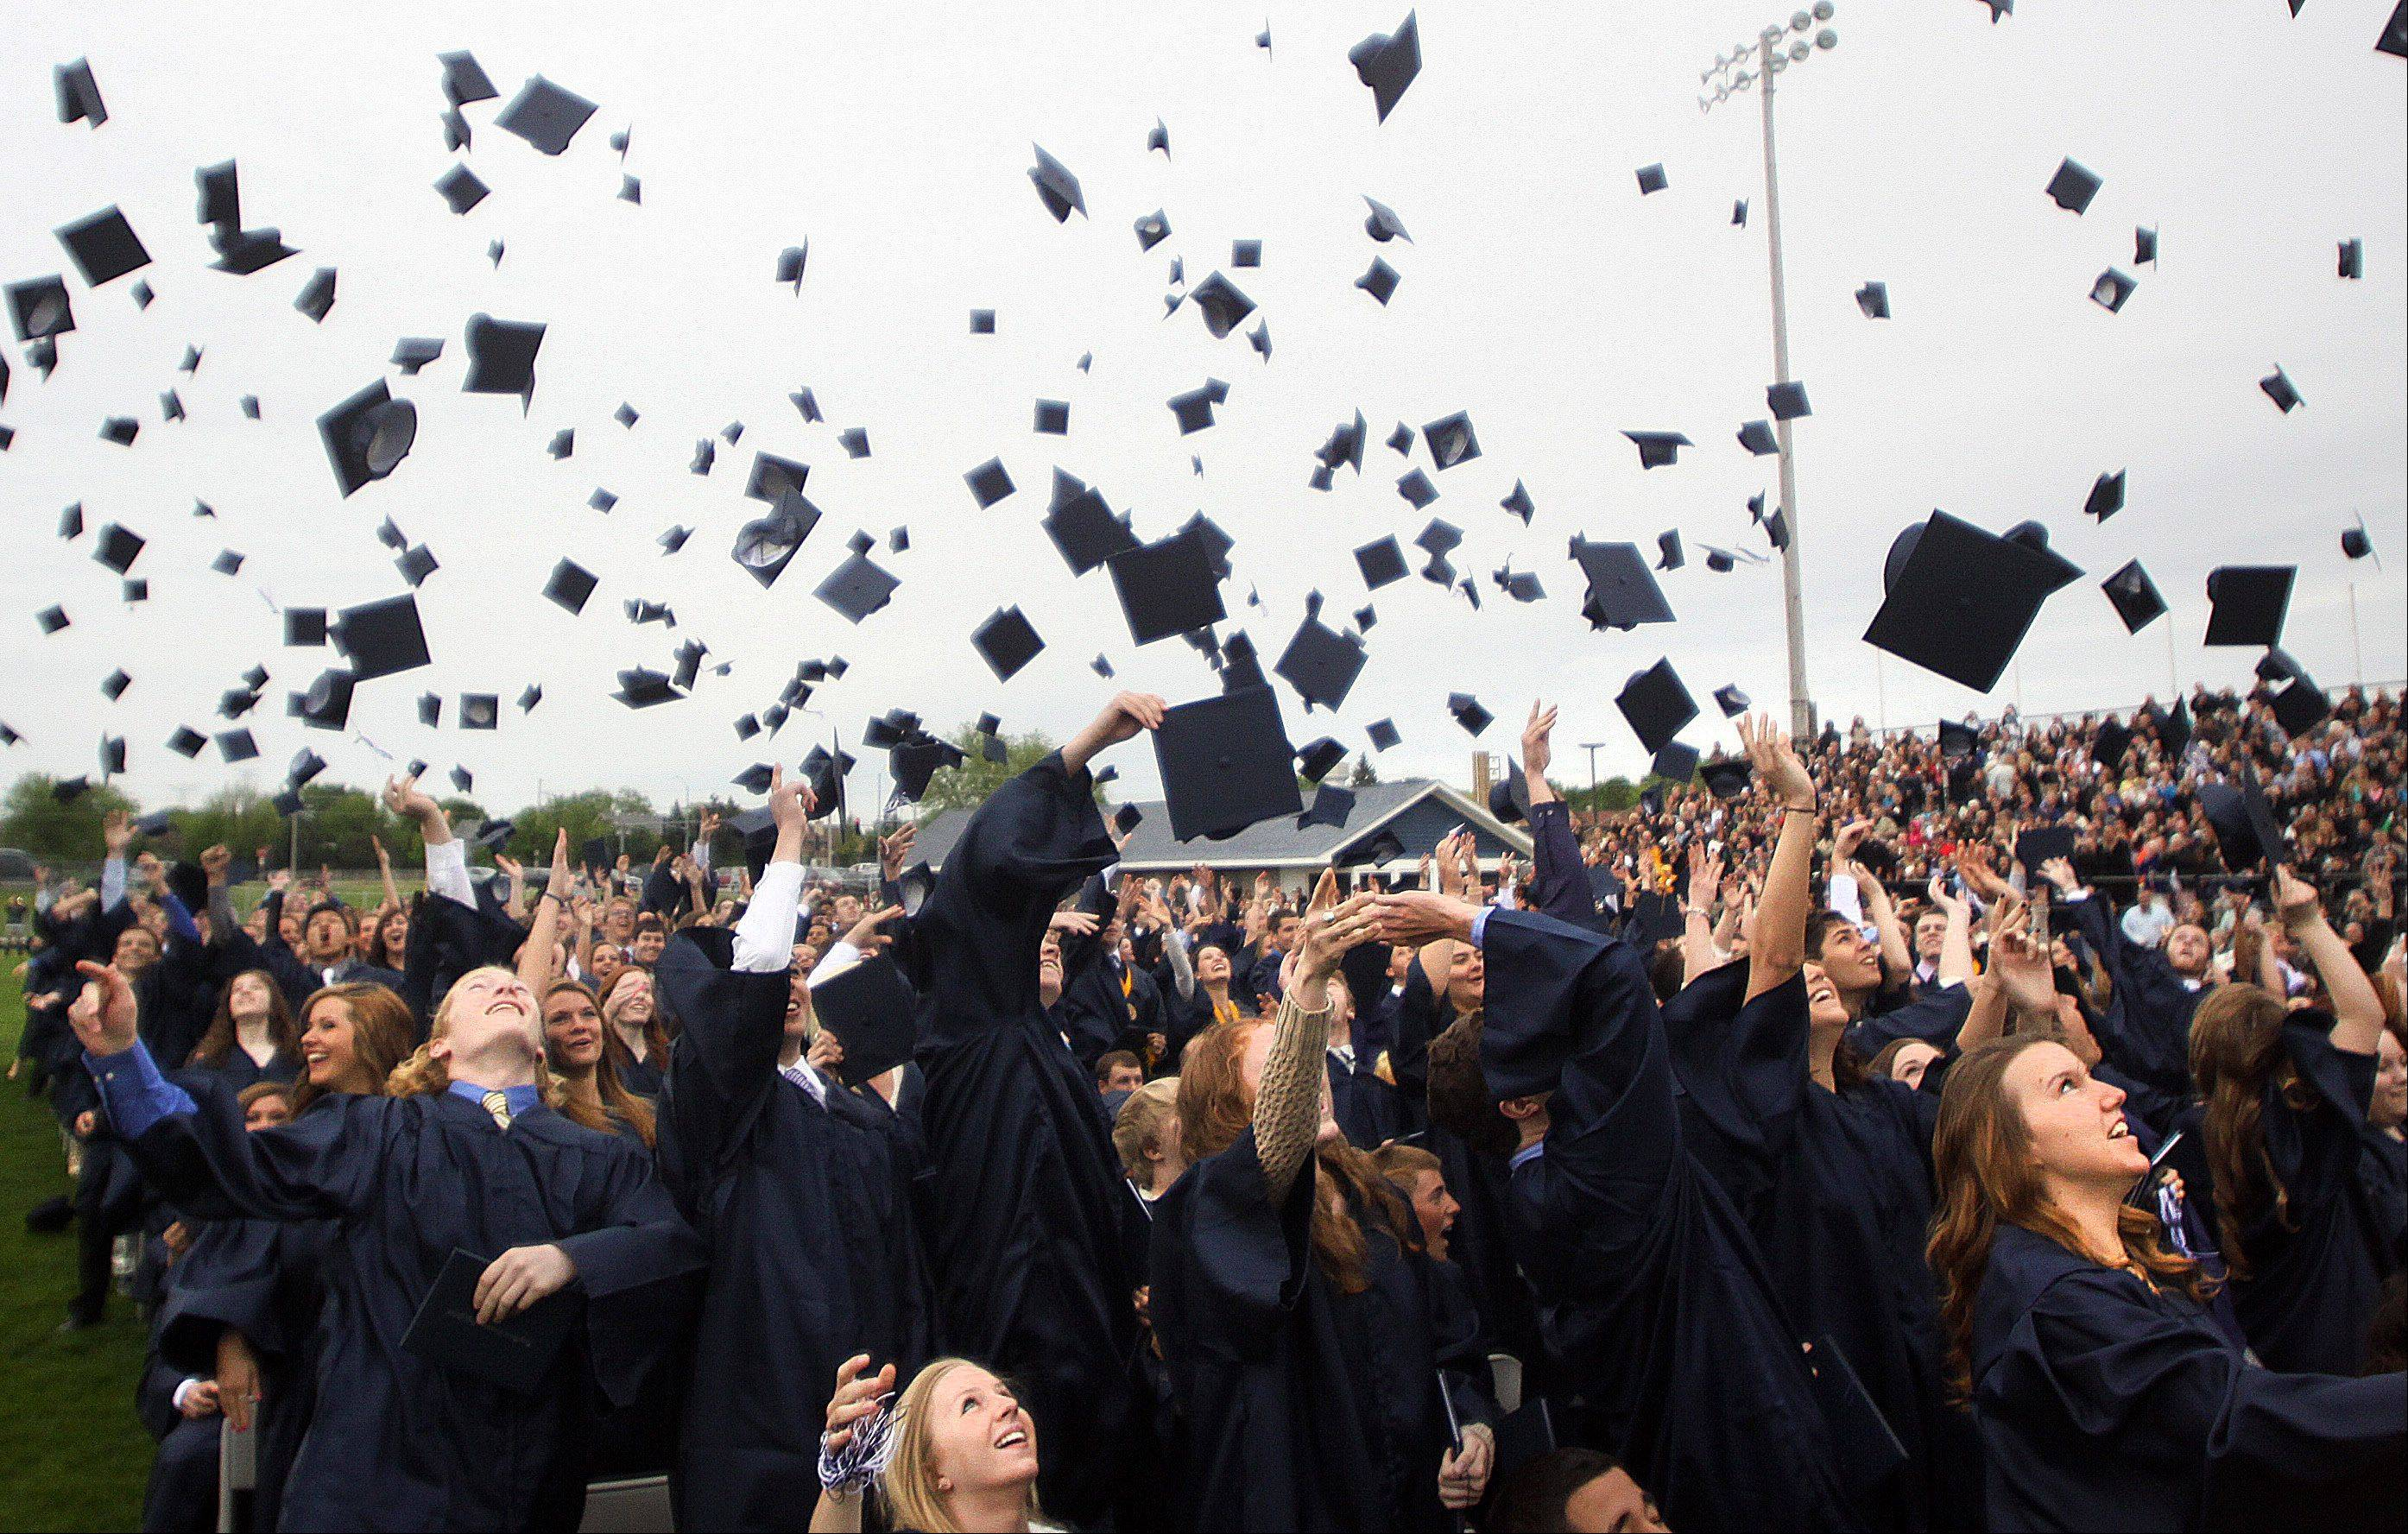 Members of the class of 2013 toss their caps at the conclusion of Cary-Grove High School commencement exercises at Al Bohrer Athletic Field on the Campus of Cary-Grove High School on Saturday morning.